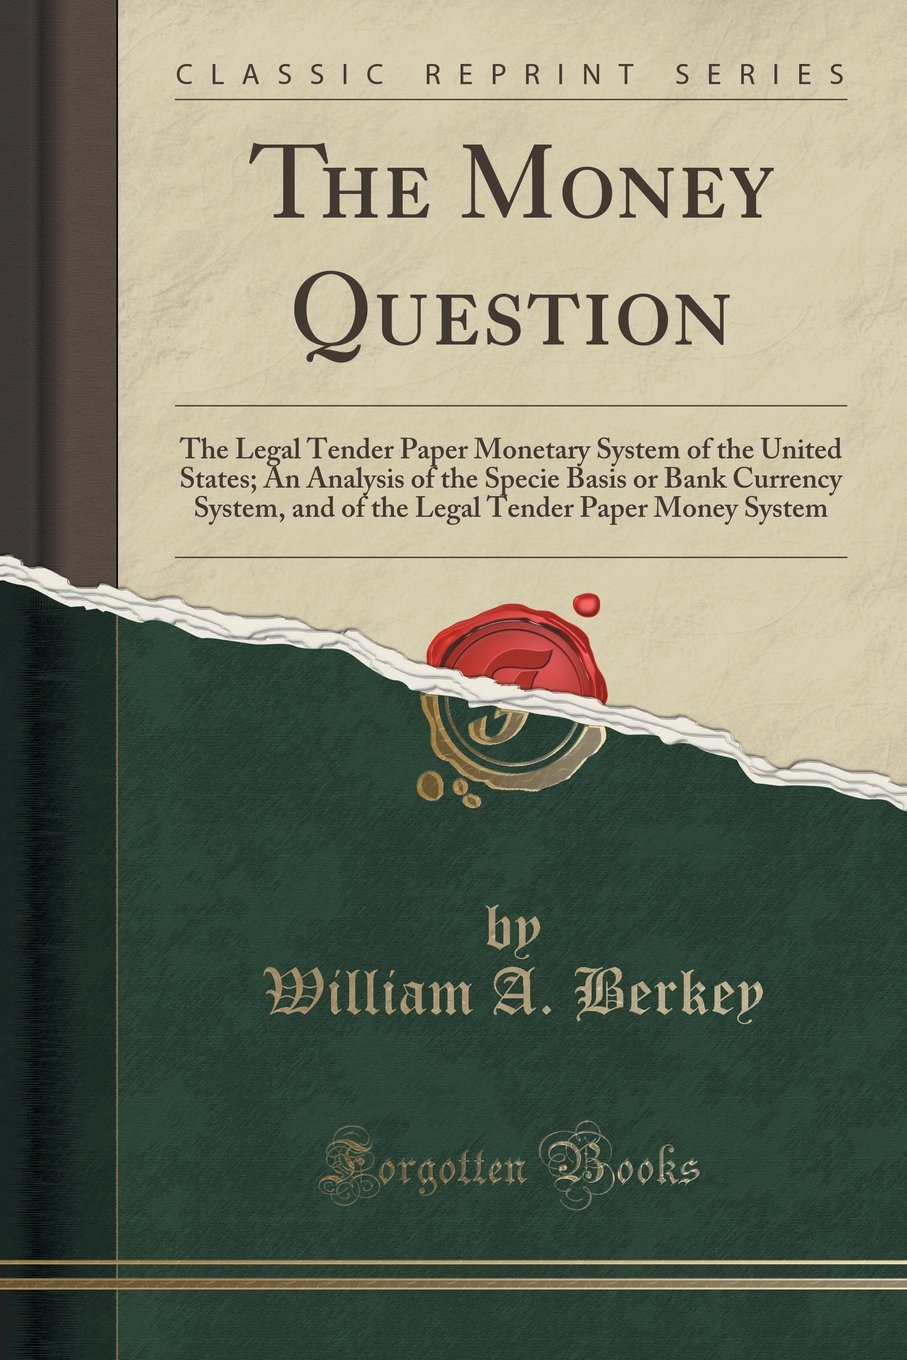 Download The Money Question: The Legal Tender Paper Monetary System of the United States; An Analysis of the Specie Basis or Bank Currency System, and of the Legal Tender Paper Money System (Classic Reprint) pdf epub